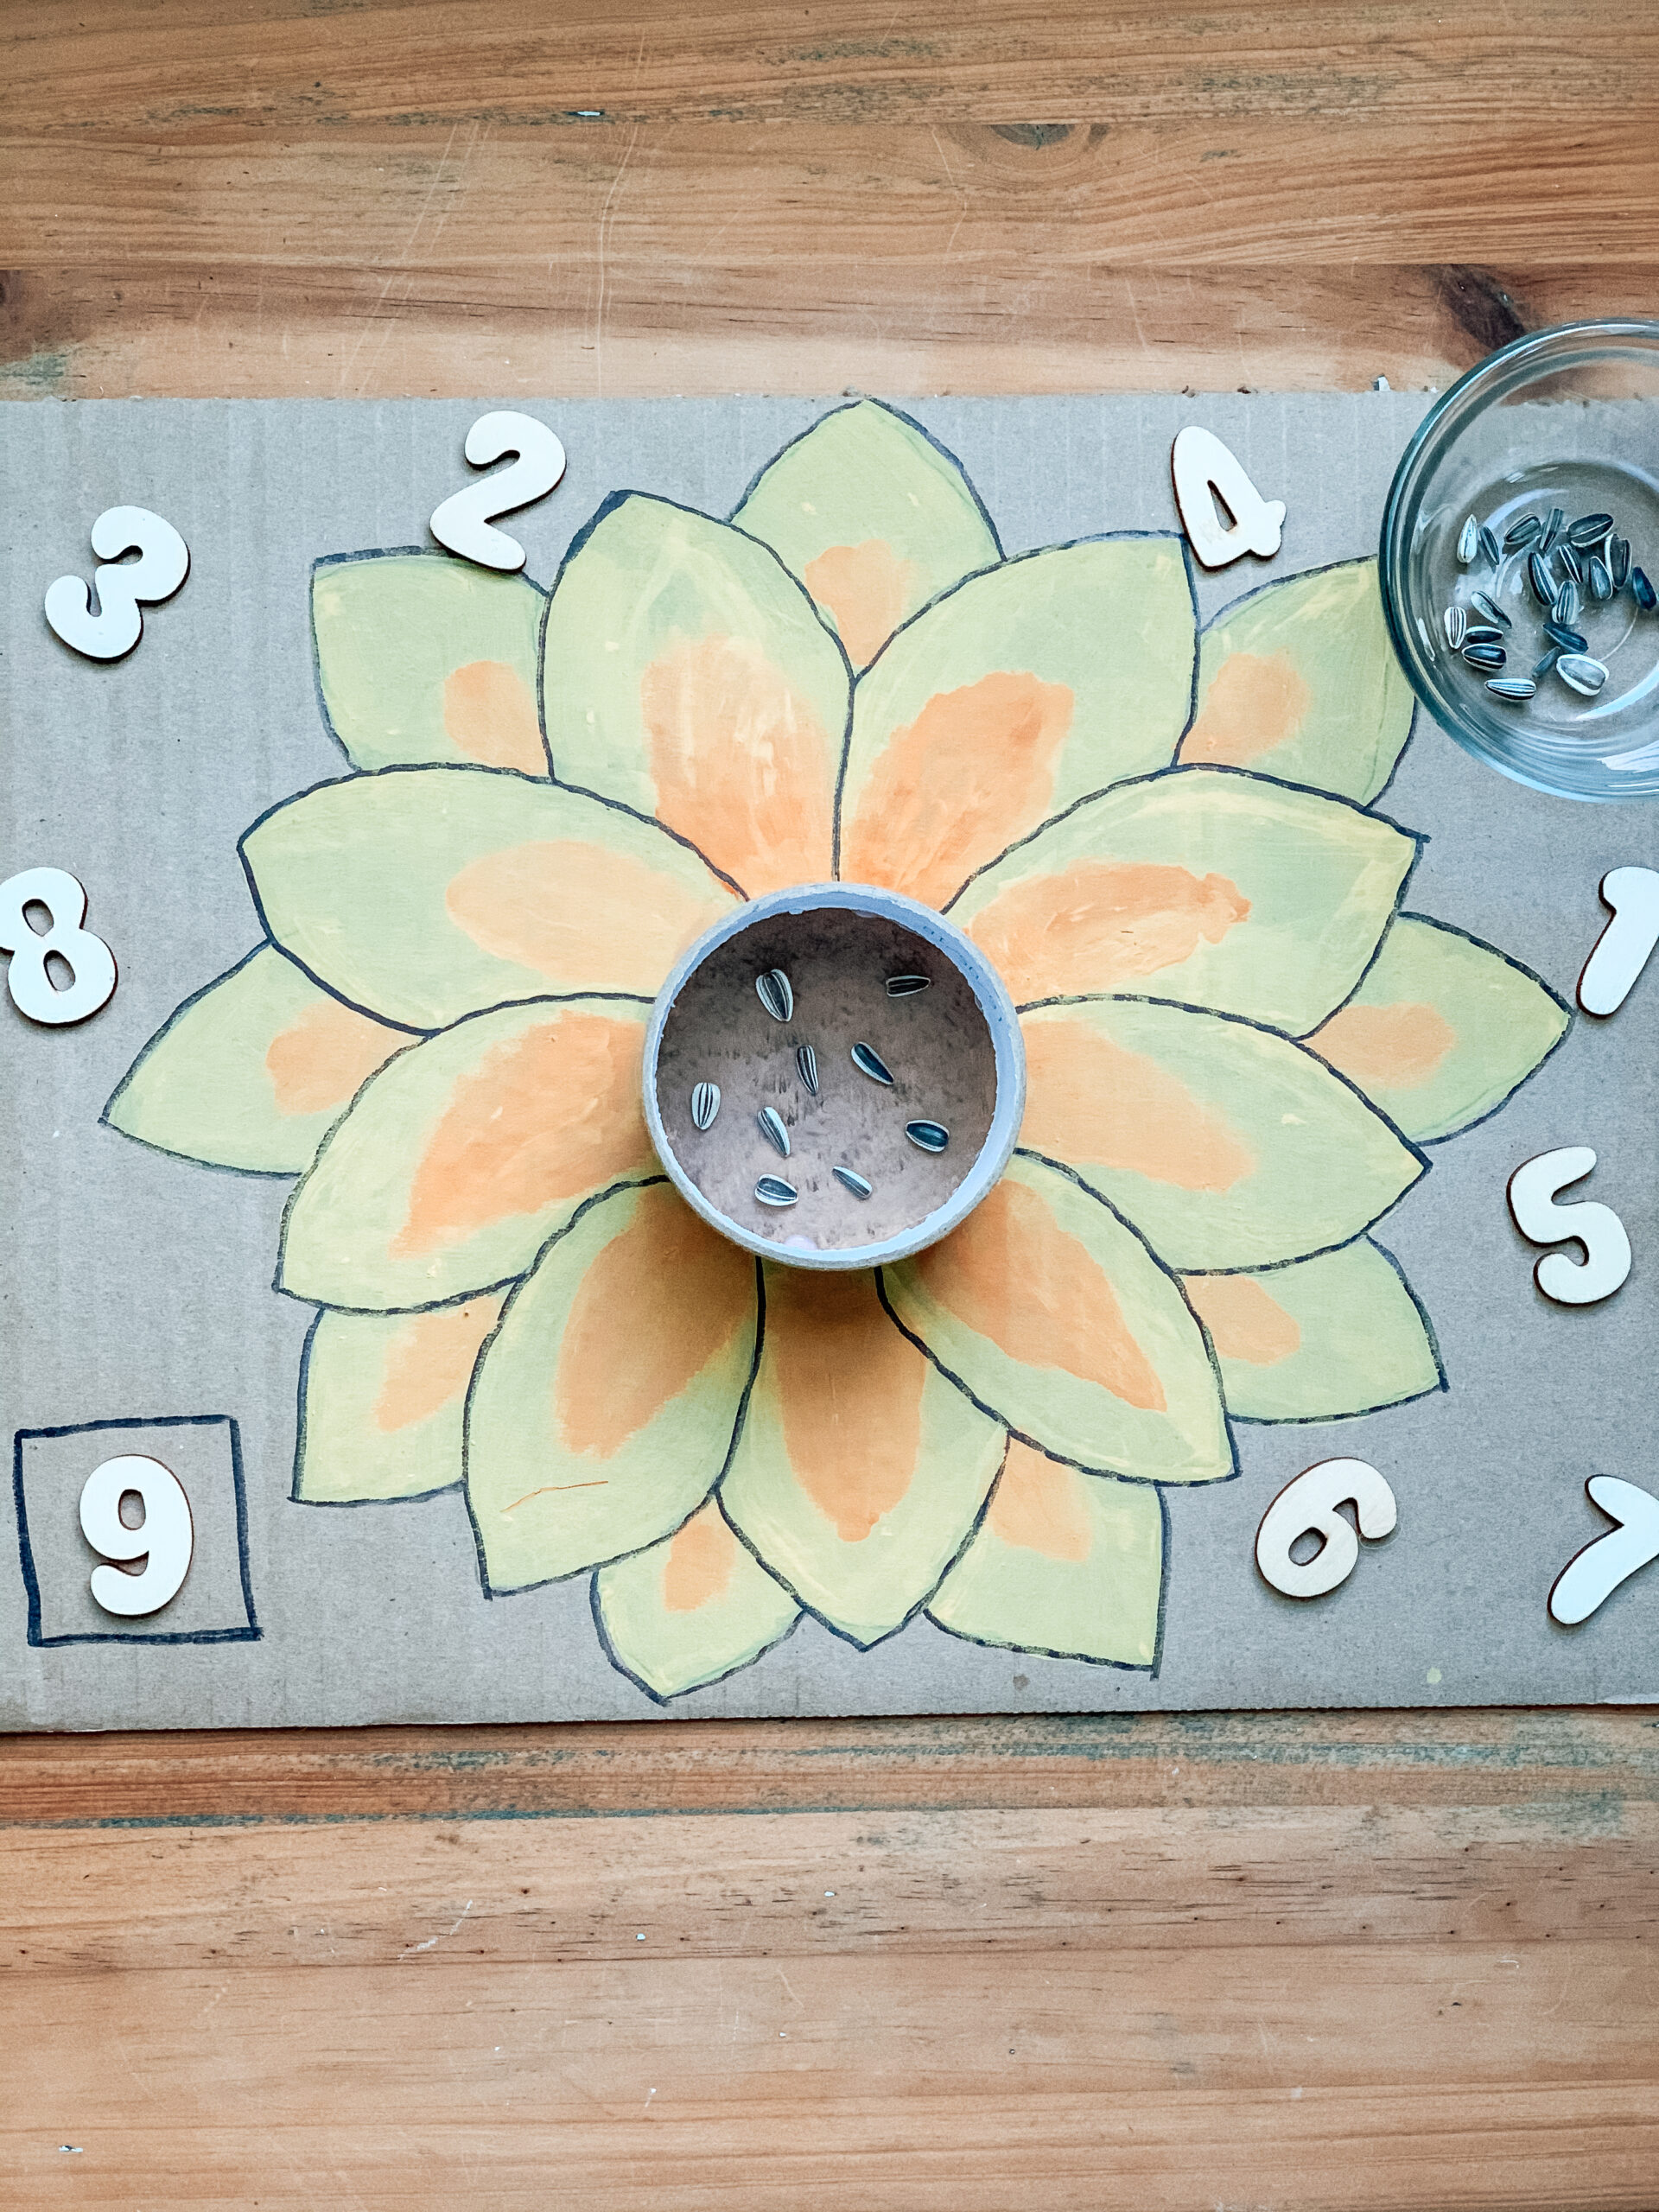 Sunflower seed counting kids activity